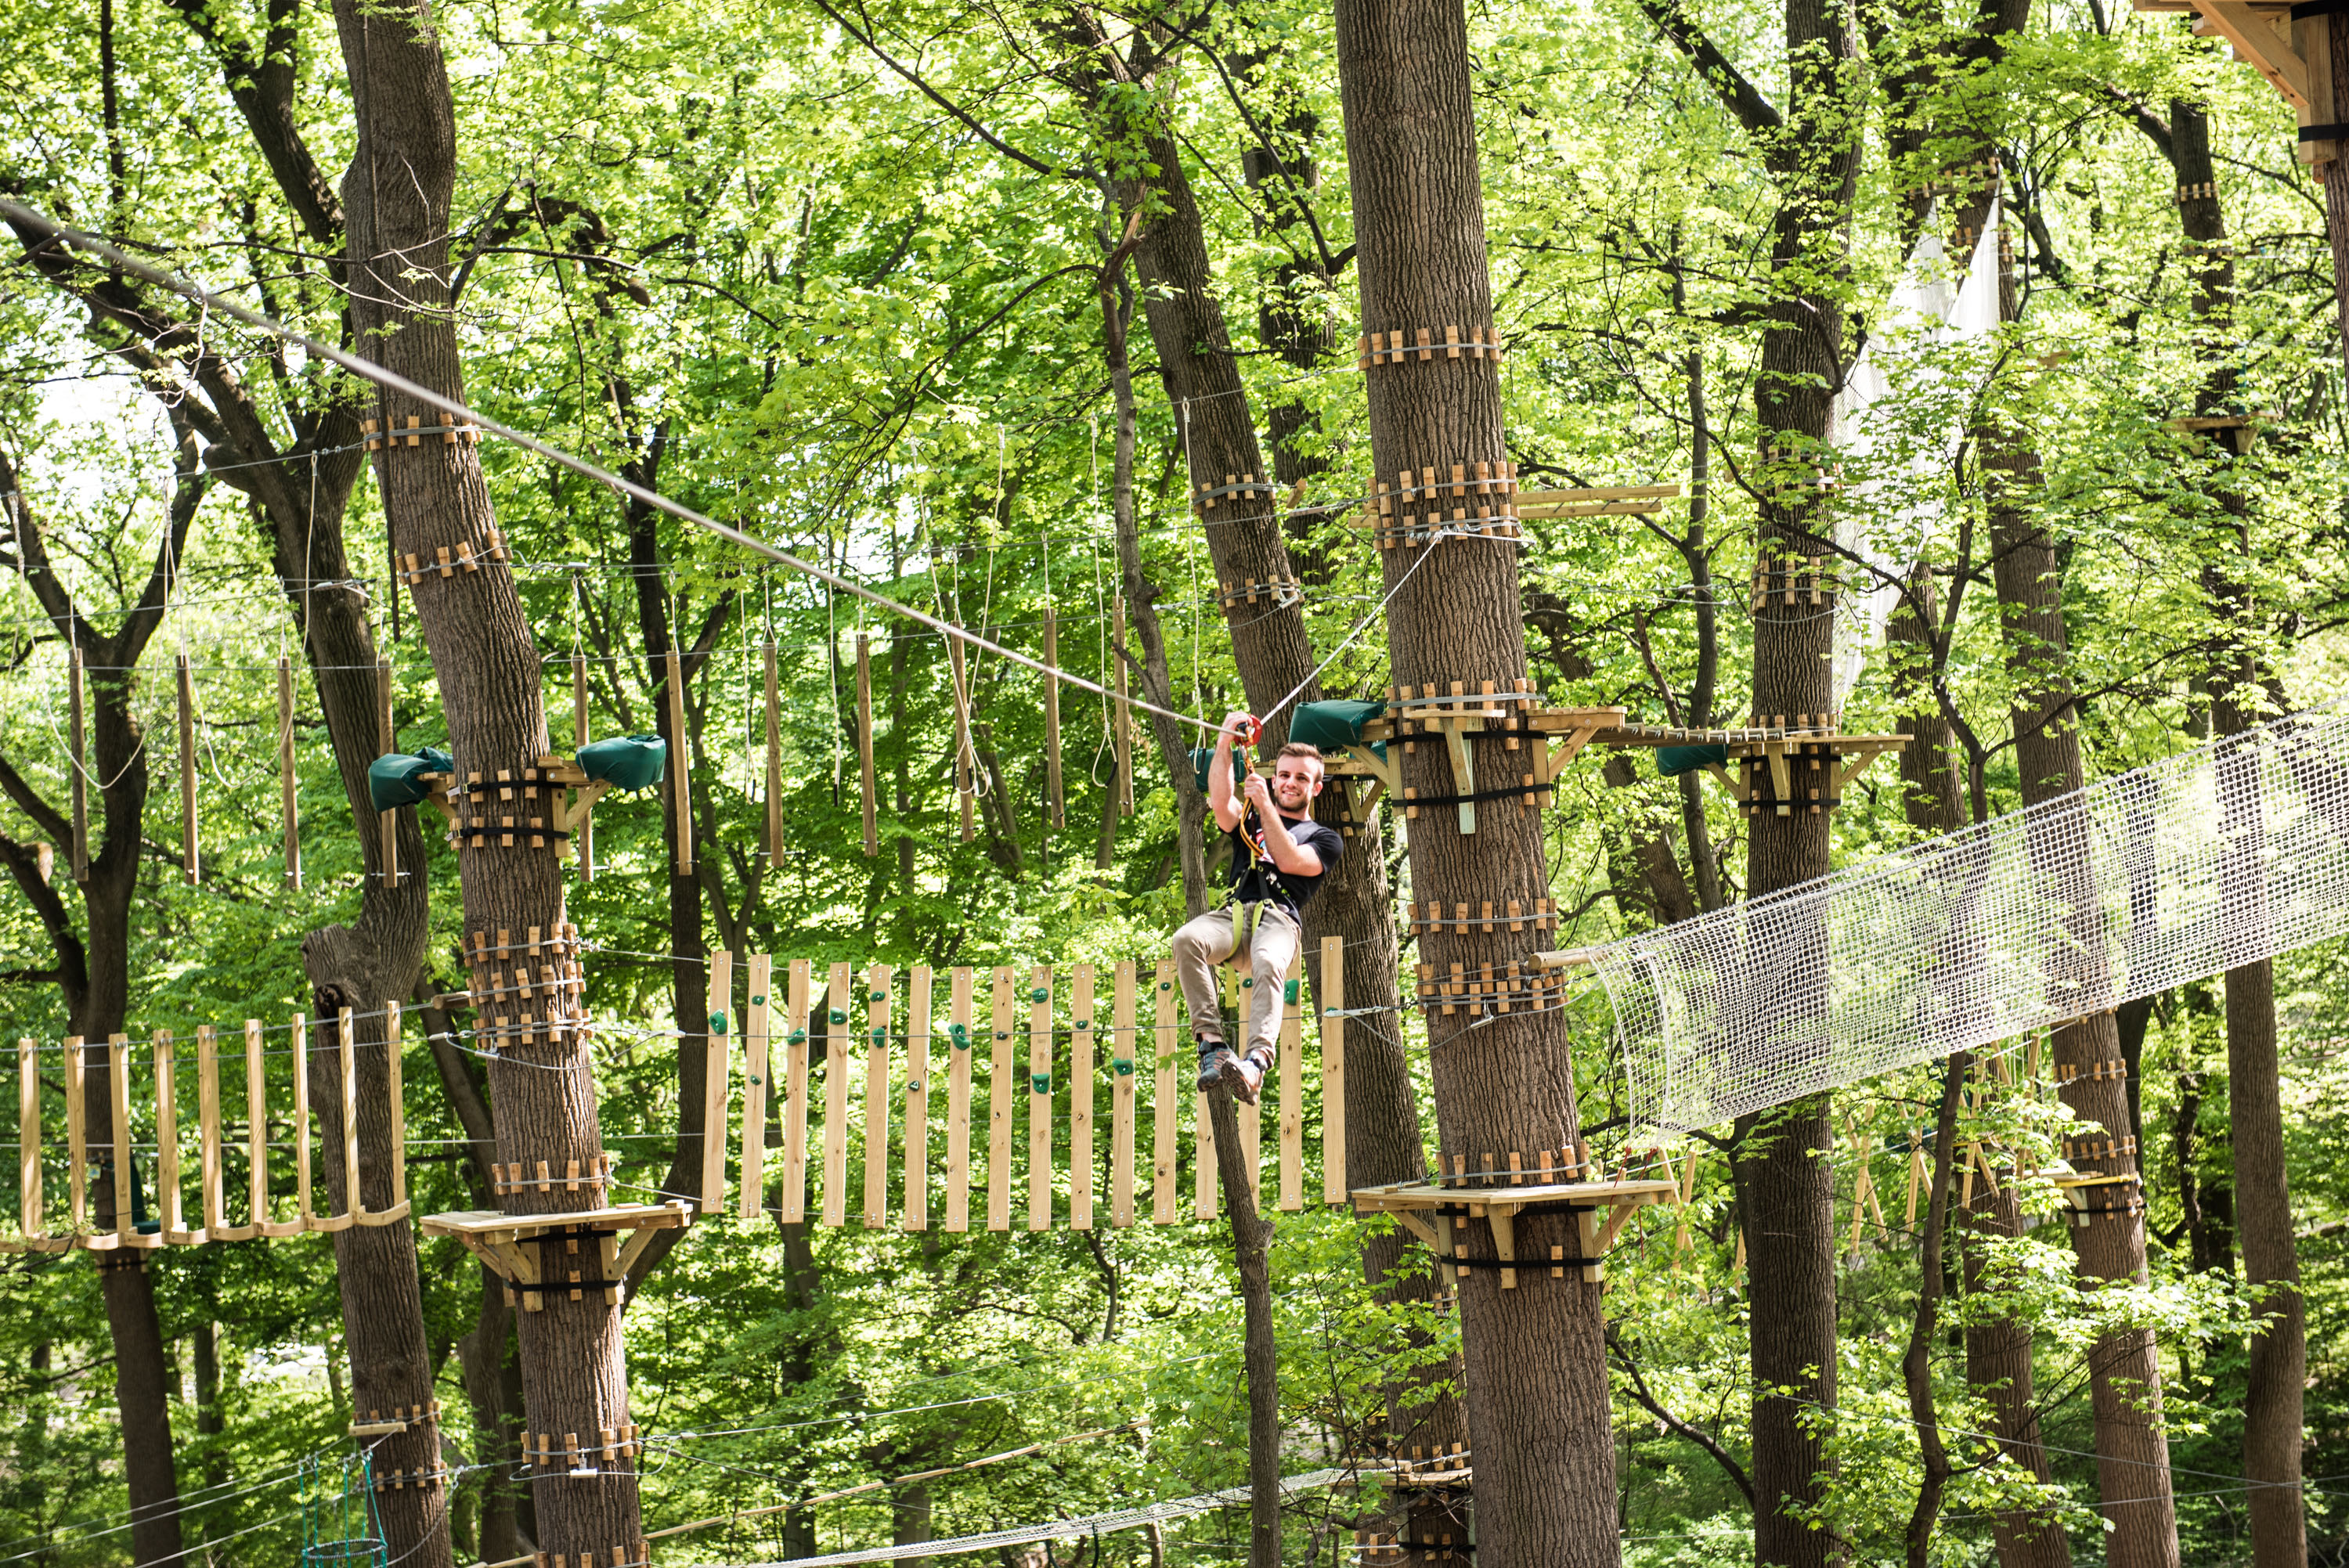 Treetop Quest, a sky-high obstacle stretched across nearly four acres of West Fairmount Park, opens in Philly this Saturday, May 12.